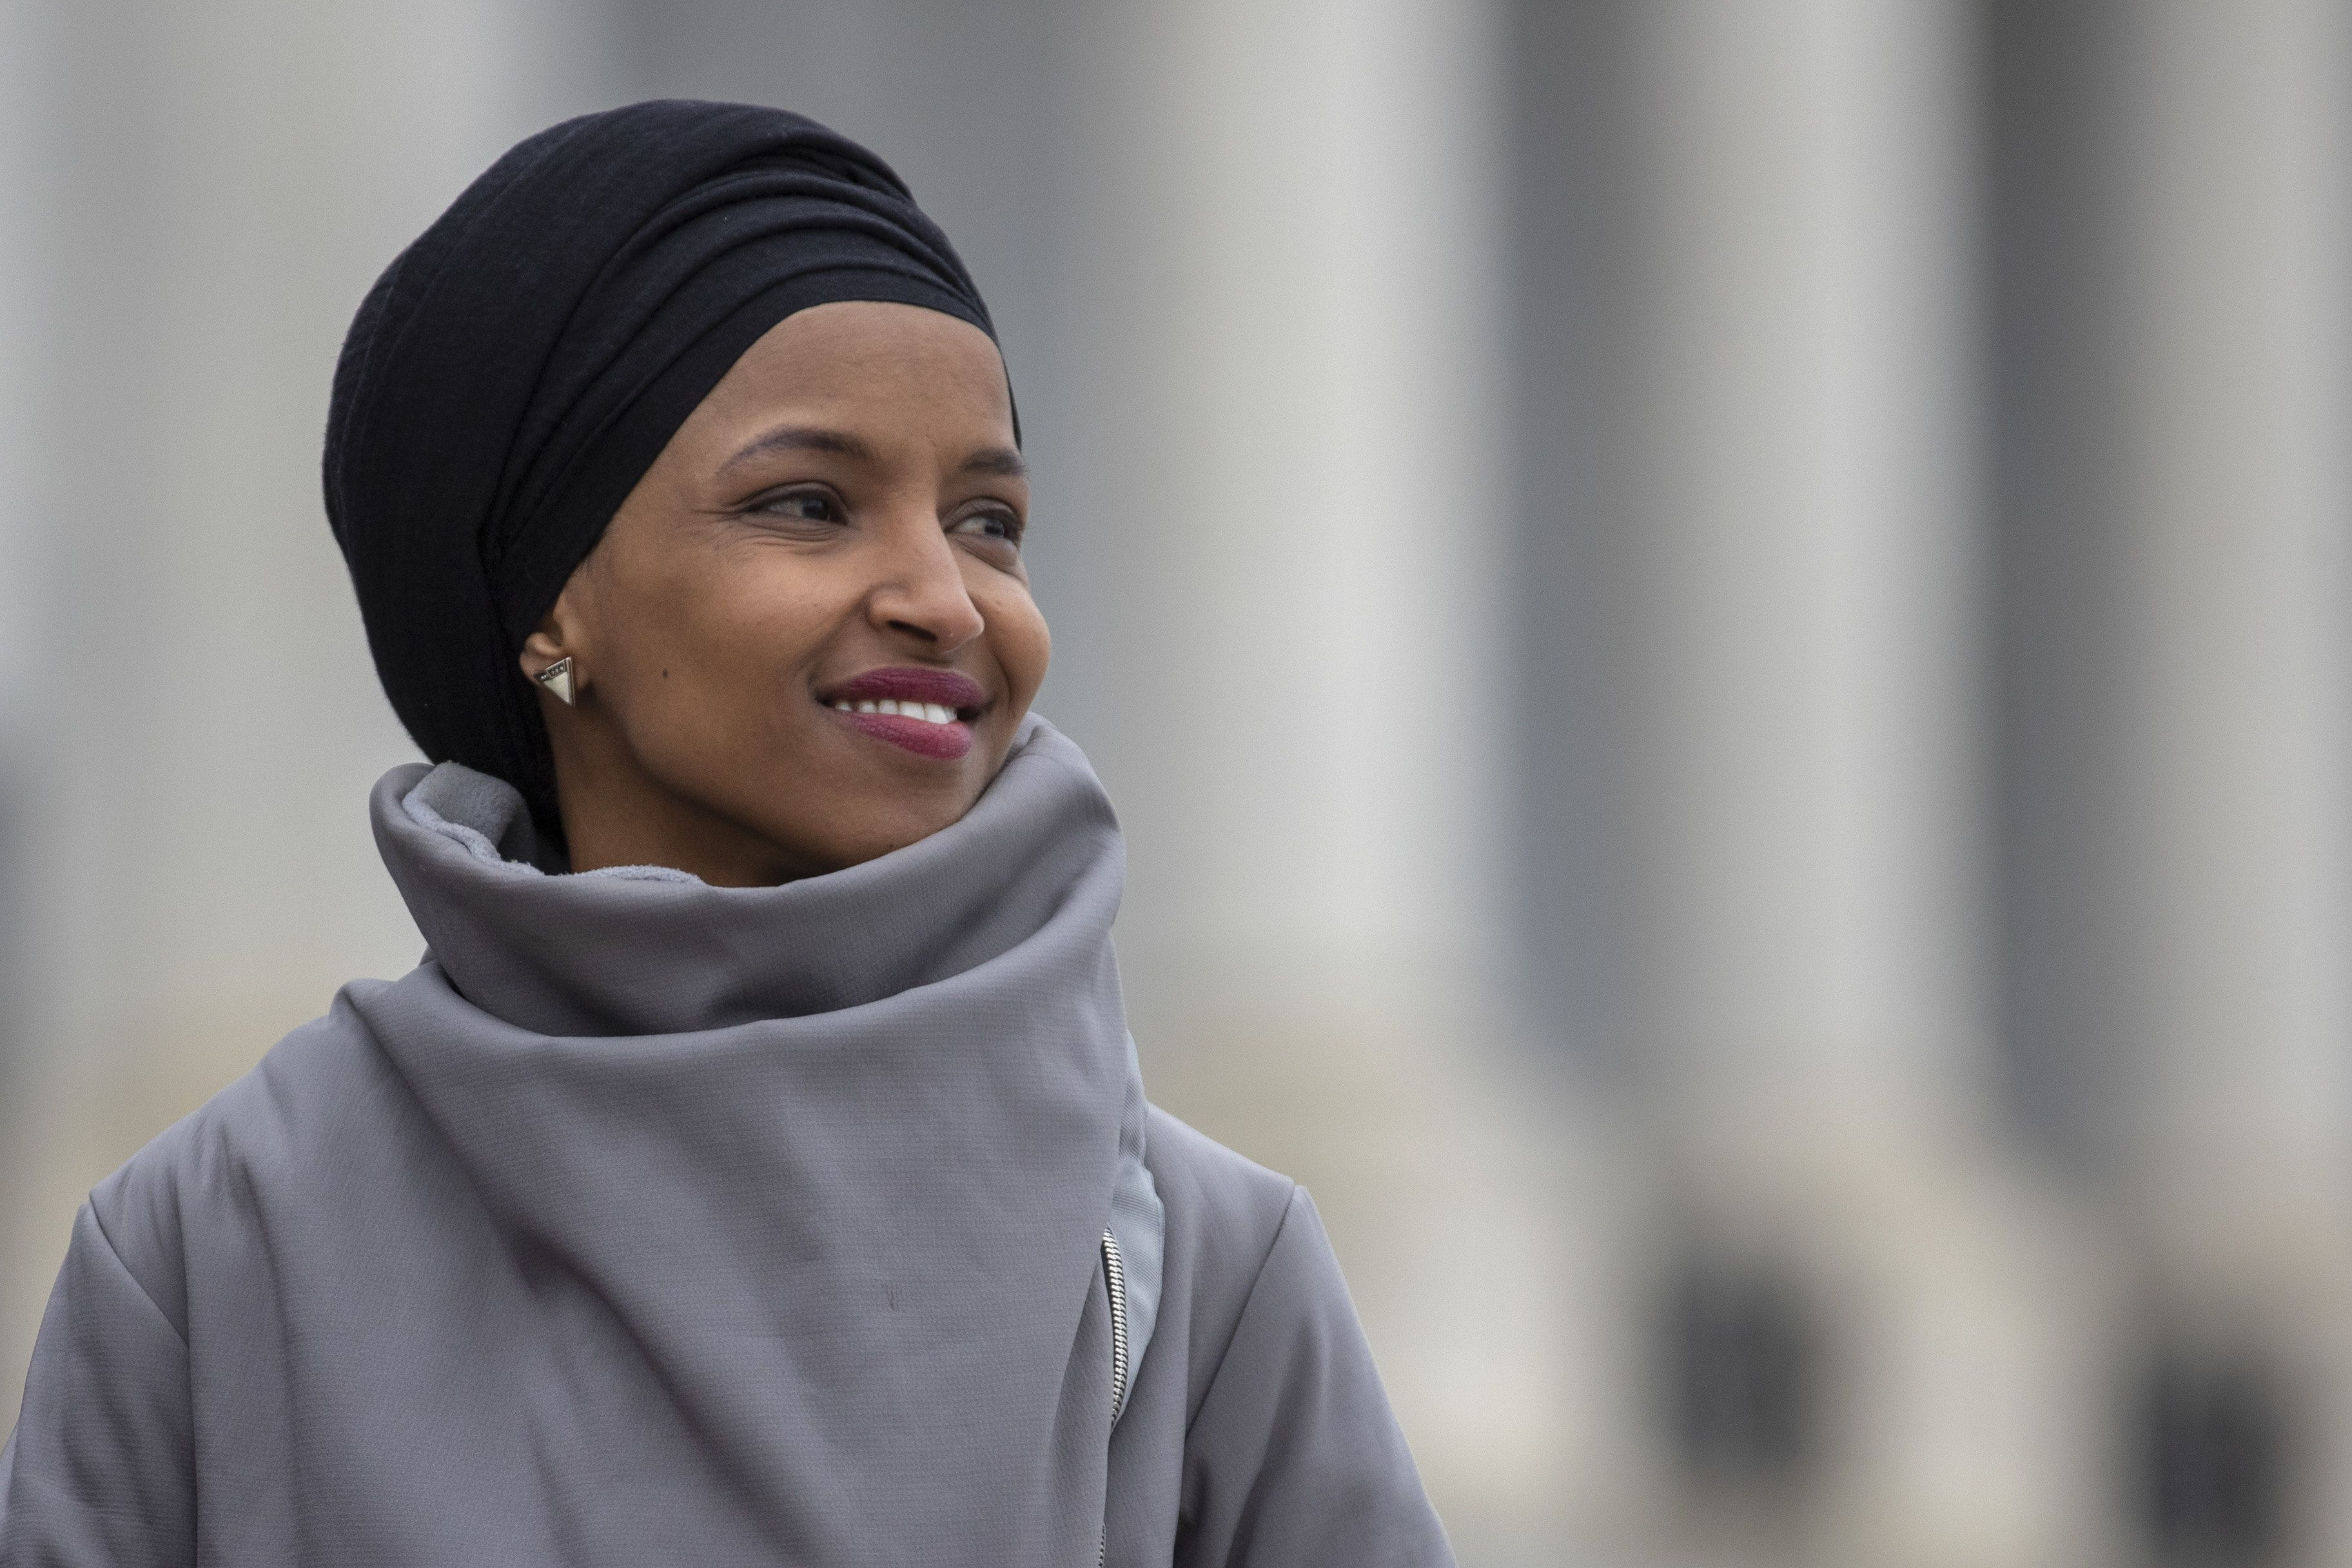 Representative Ilhan Omar, Democrat from Minnesota, smiles during a news conference in Washington, D.C., U.S., on Friday, March 8, 2019. House Democrats are set to approve H.R. 1, a far-reaching elections and ethics bill that would change the way congressional elections are funded, impose new voter-access mandates on states, require groups to publicize donors and force disclosure of presidential candidates' tax returns. Photographer: Alex Edelman/Bloomberg via Getty Images